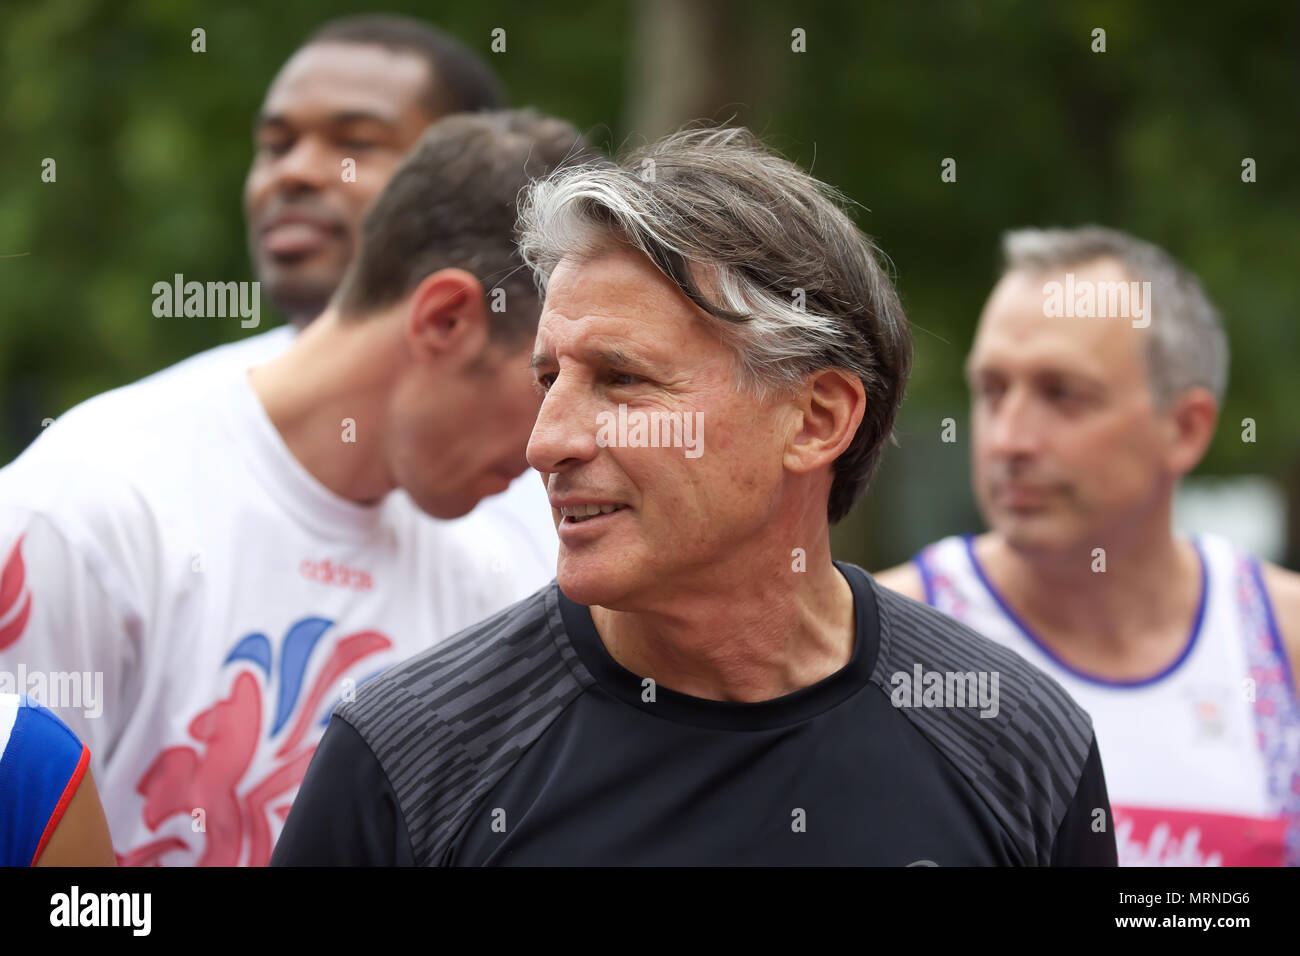 London,UK, 27th May 2018,Lord Sebastian Coe,British politician and former track and field athlete, starts Westminster Mile race along the Mall.Credit Keith Larby/Alamy Live NewsLive News - Stock Image